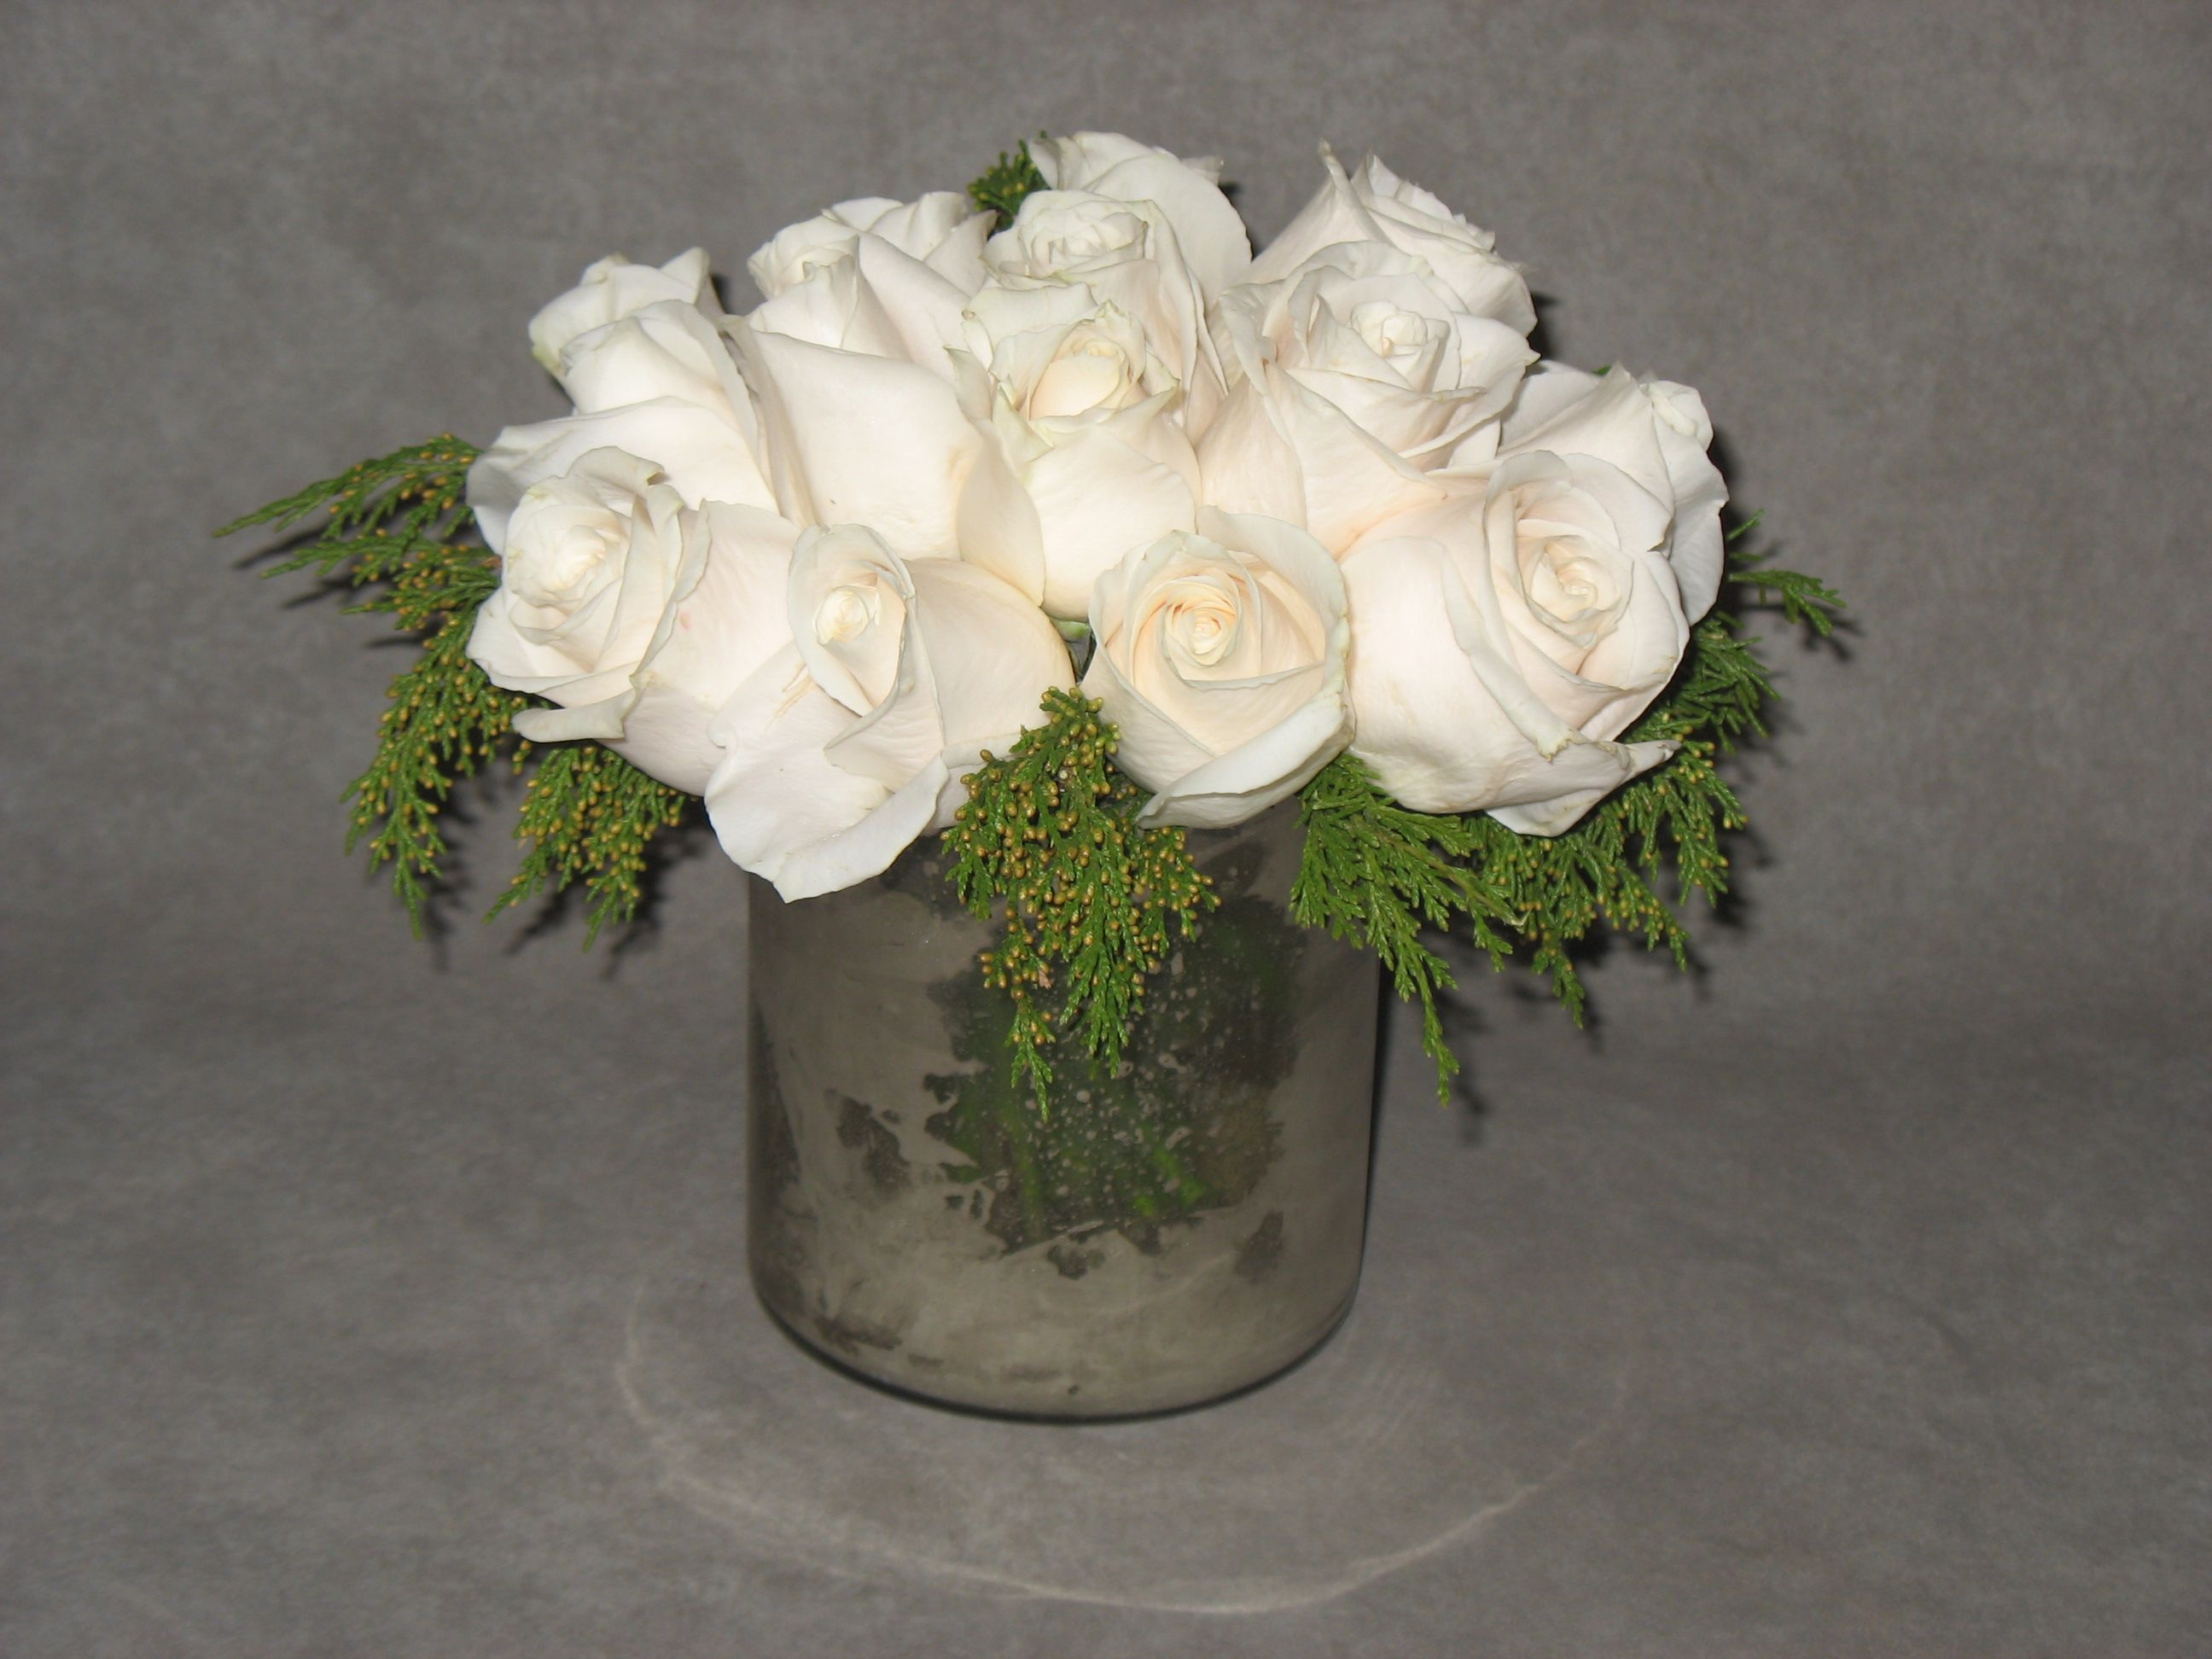 Beautiful and understated, classic white roses will never go out of style